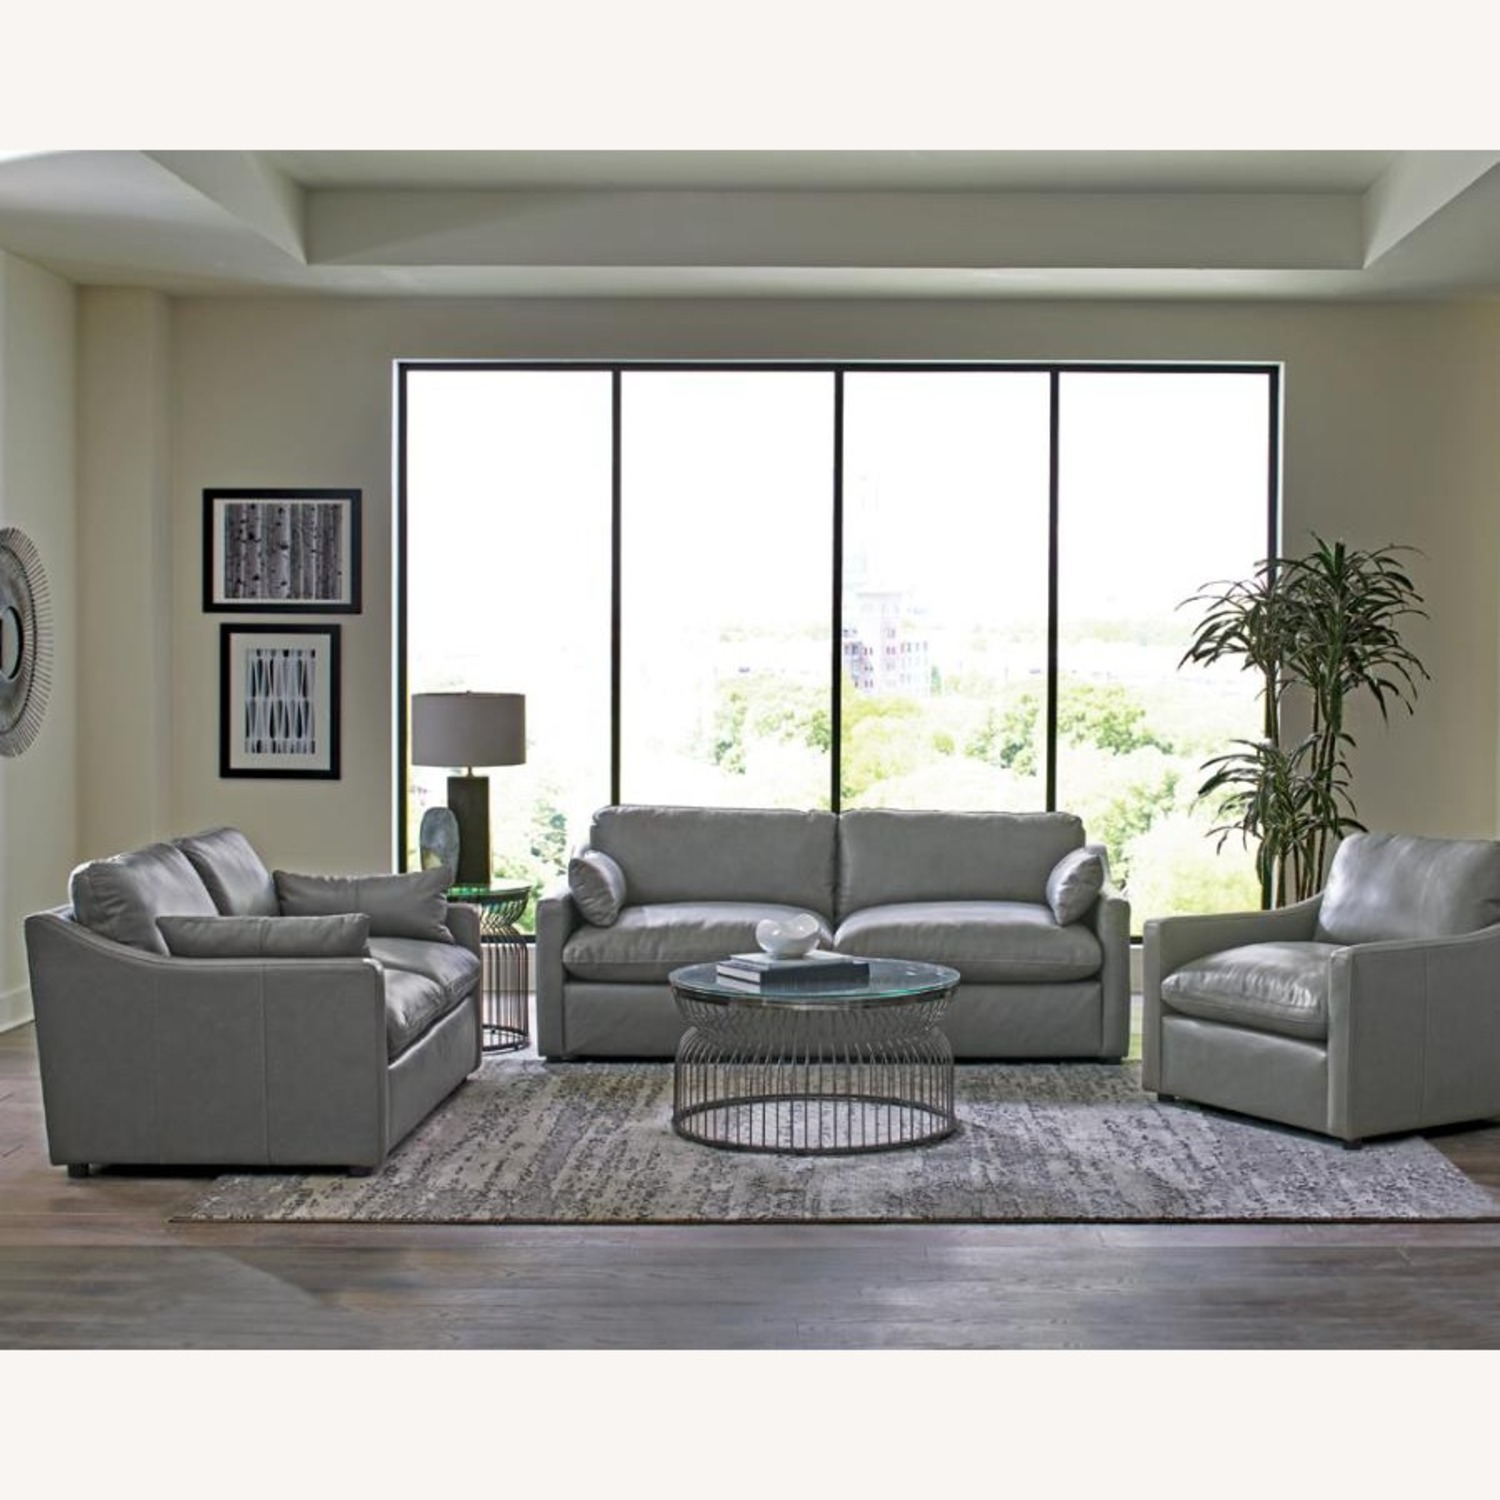 Sofa W/ Pillow-Like Seating In Grey Leather Finish - image-2